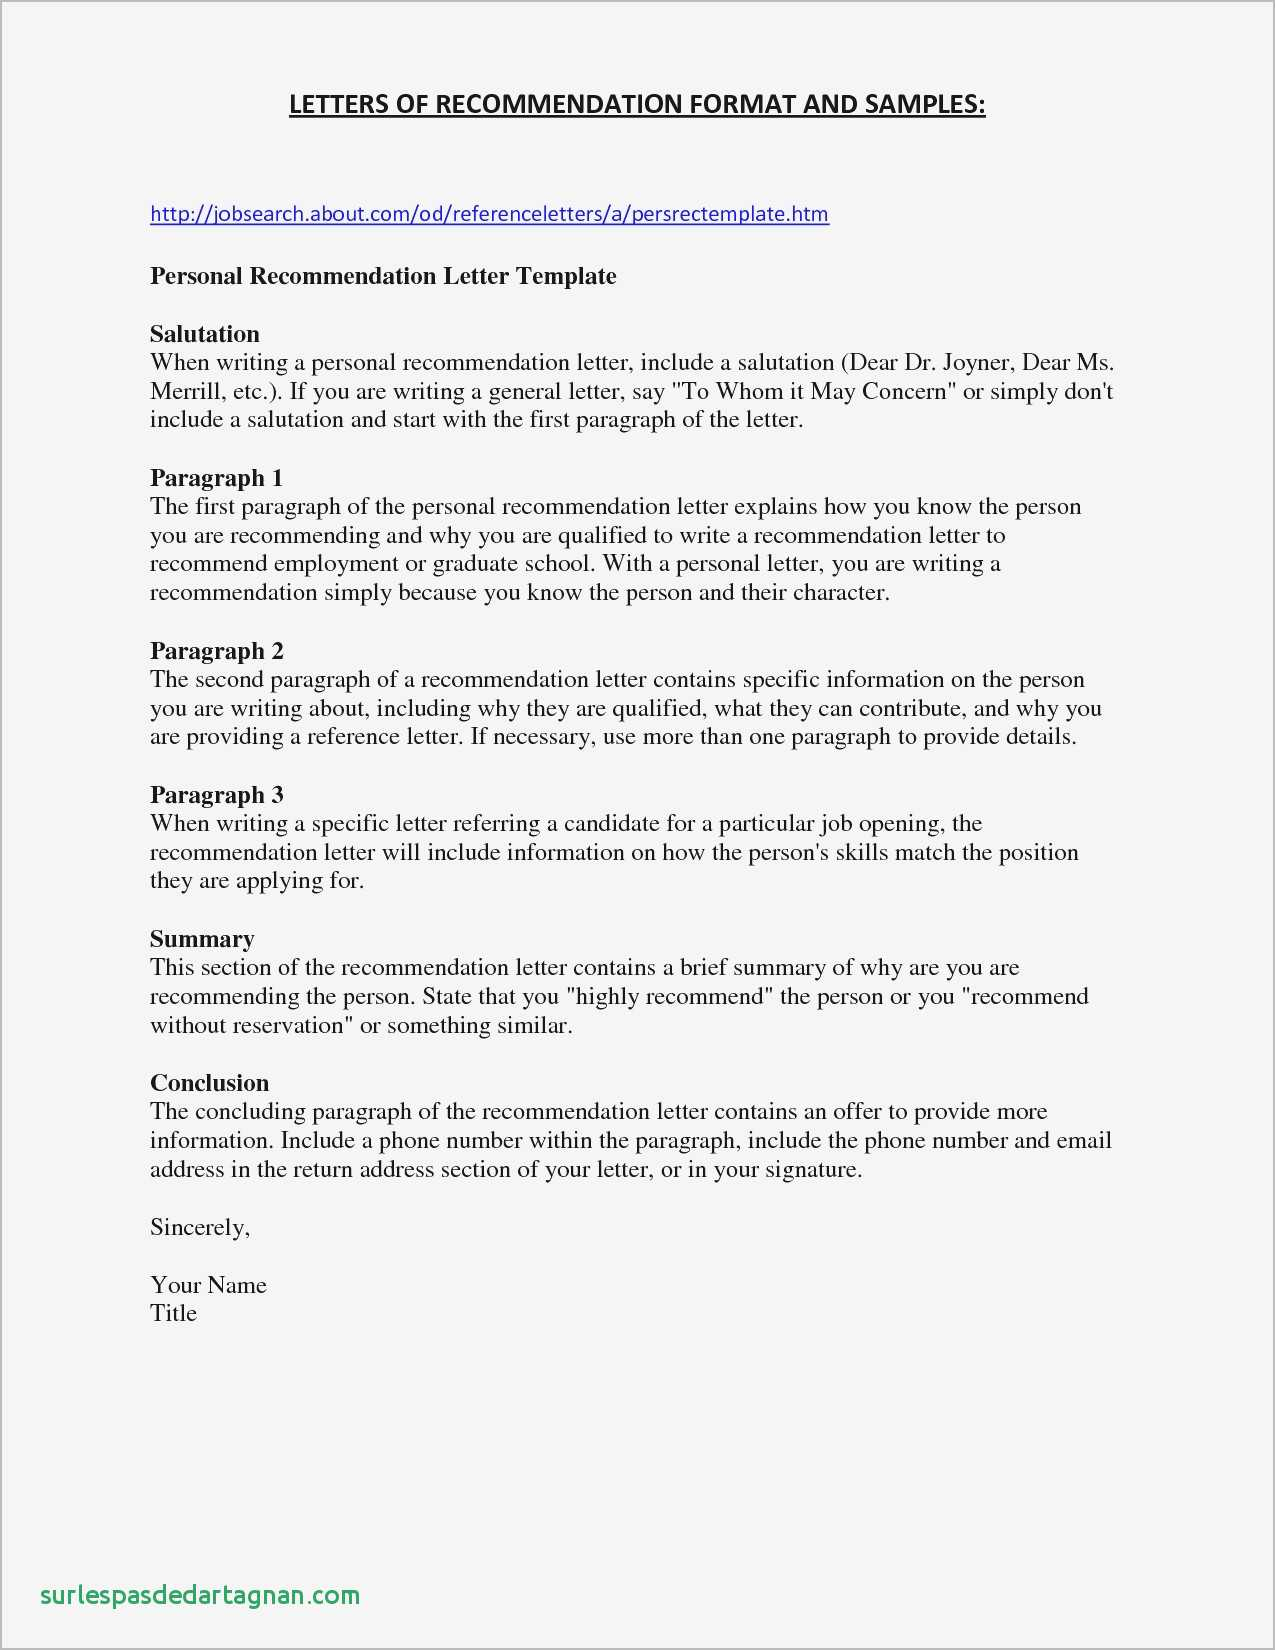 Free Sample Personal Reference Letter Template - Sample Personal Reference Letter for A Friend Samples Inspirational